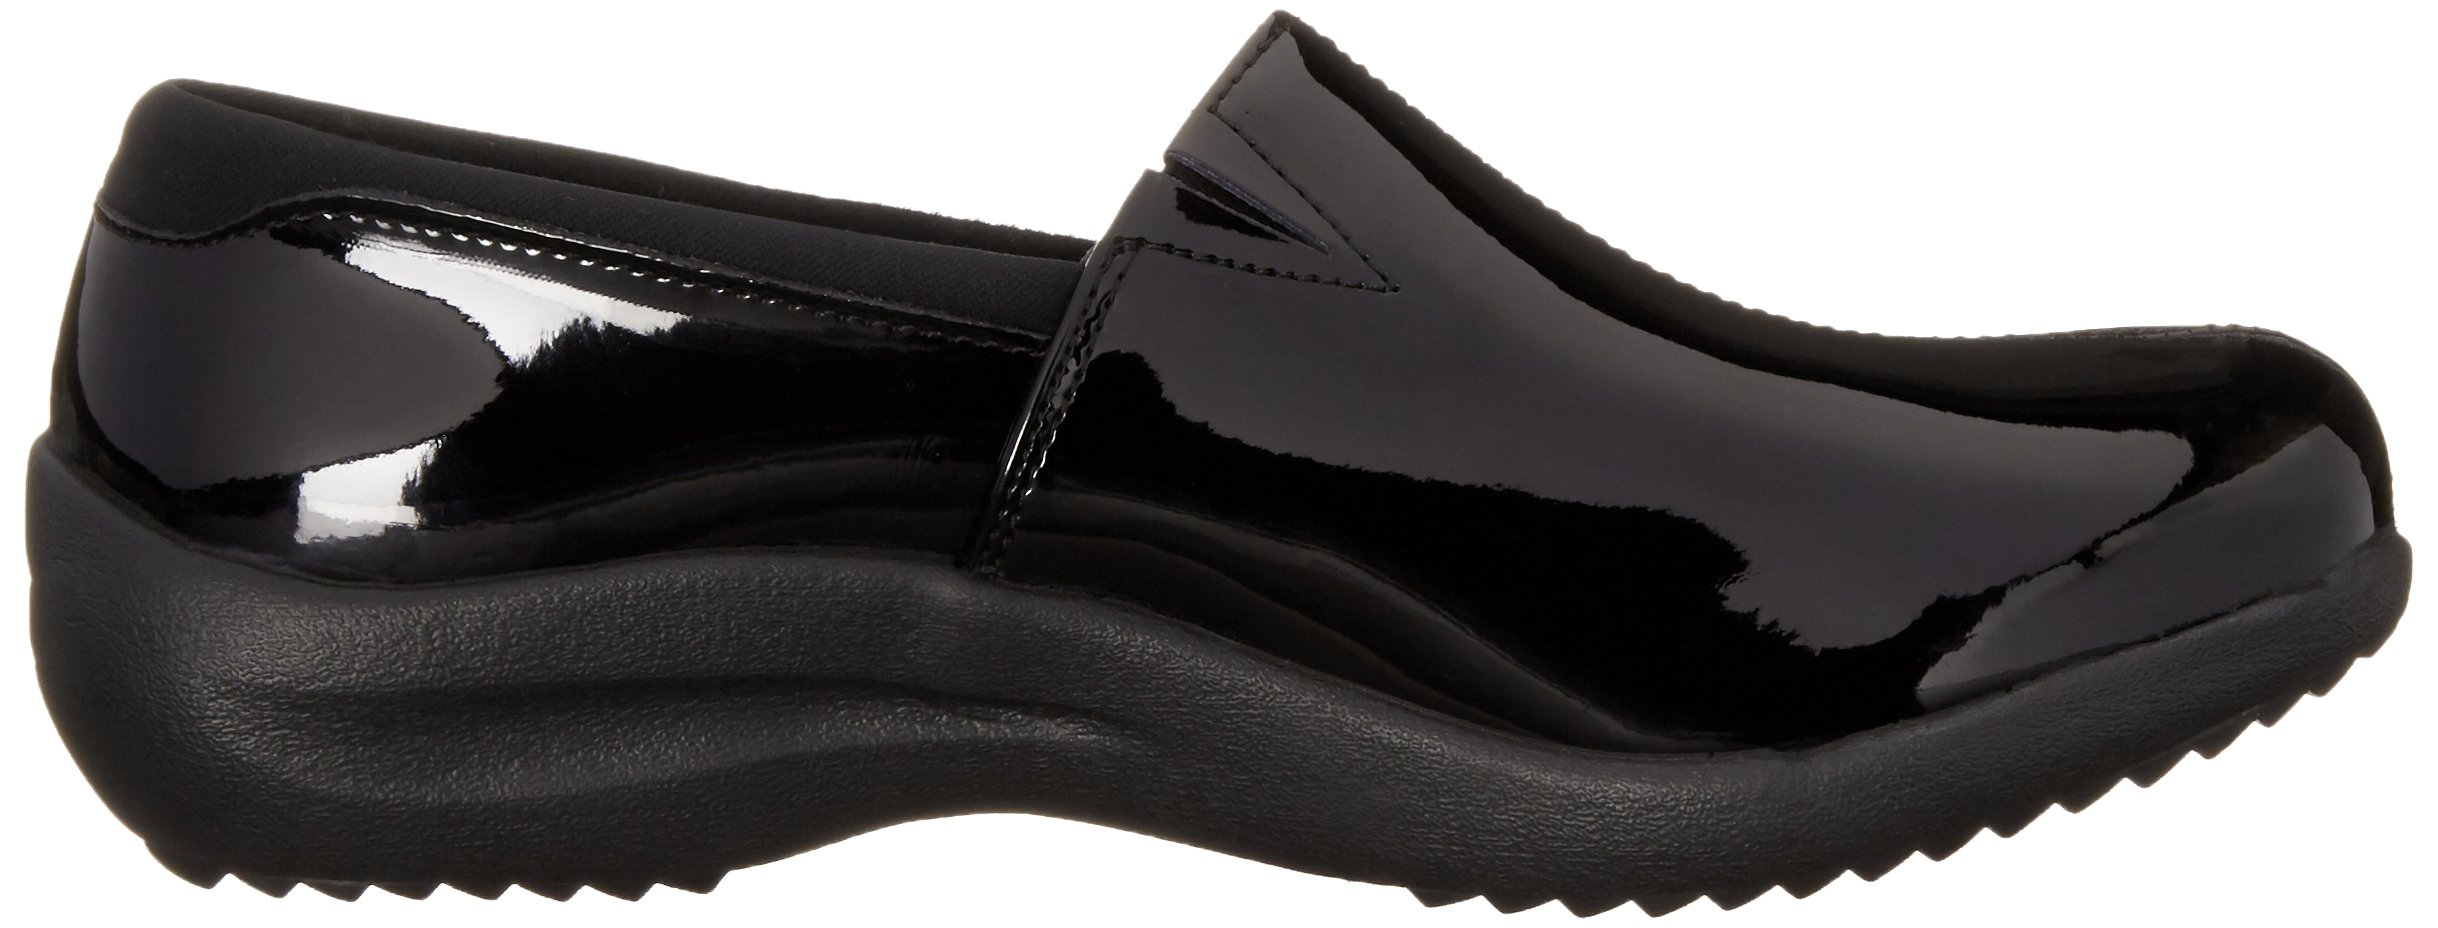 Skechers Women's Savor singular Mule, Black Patent Leather, 6 M US by Skechers (Image #7)